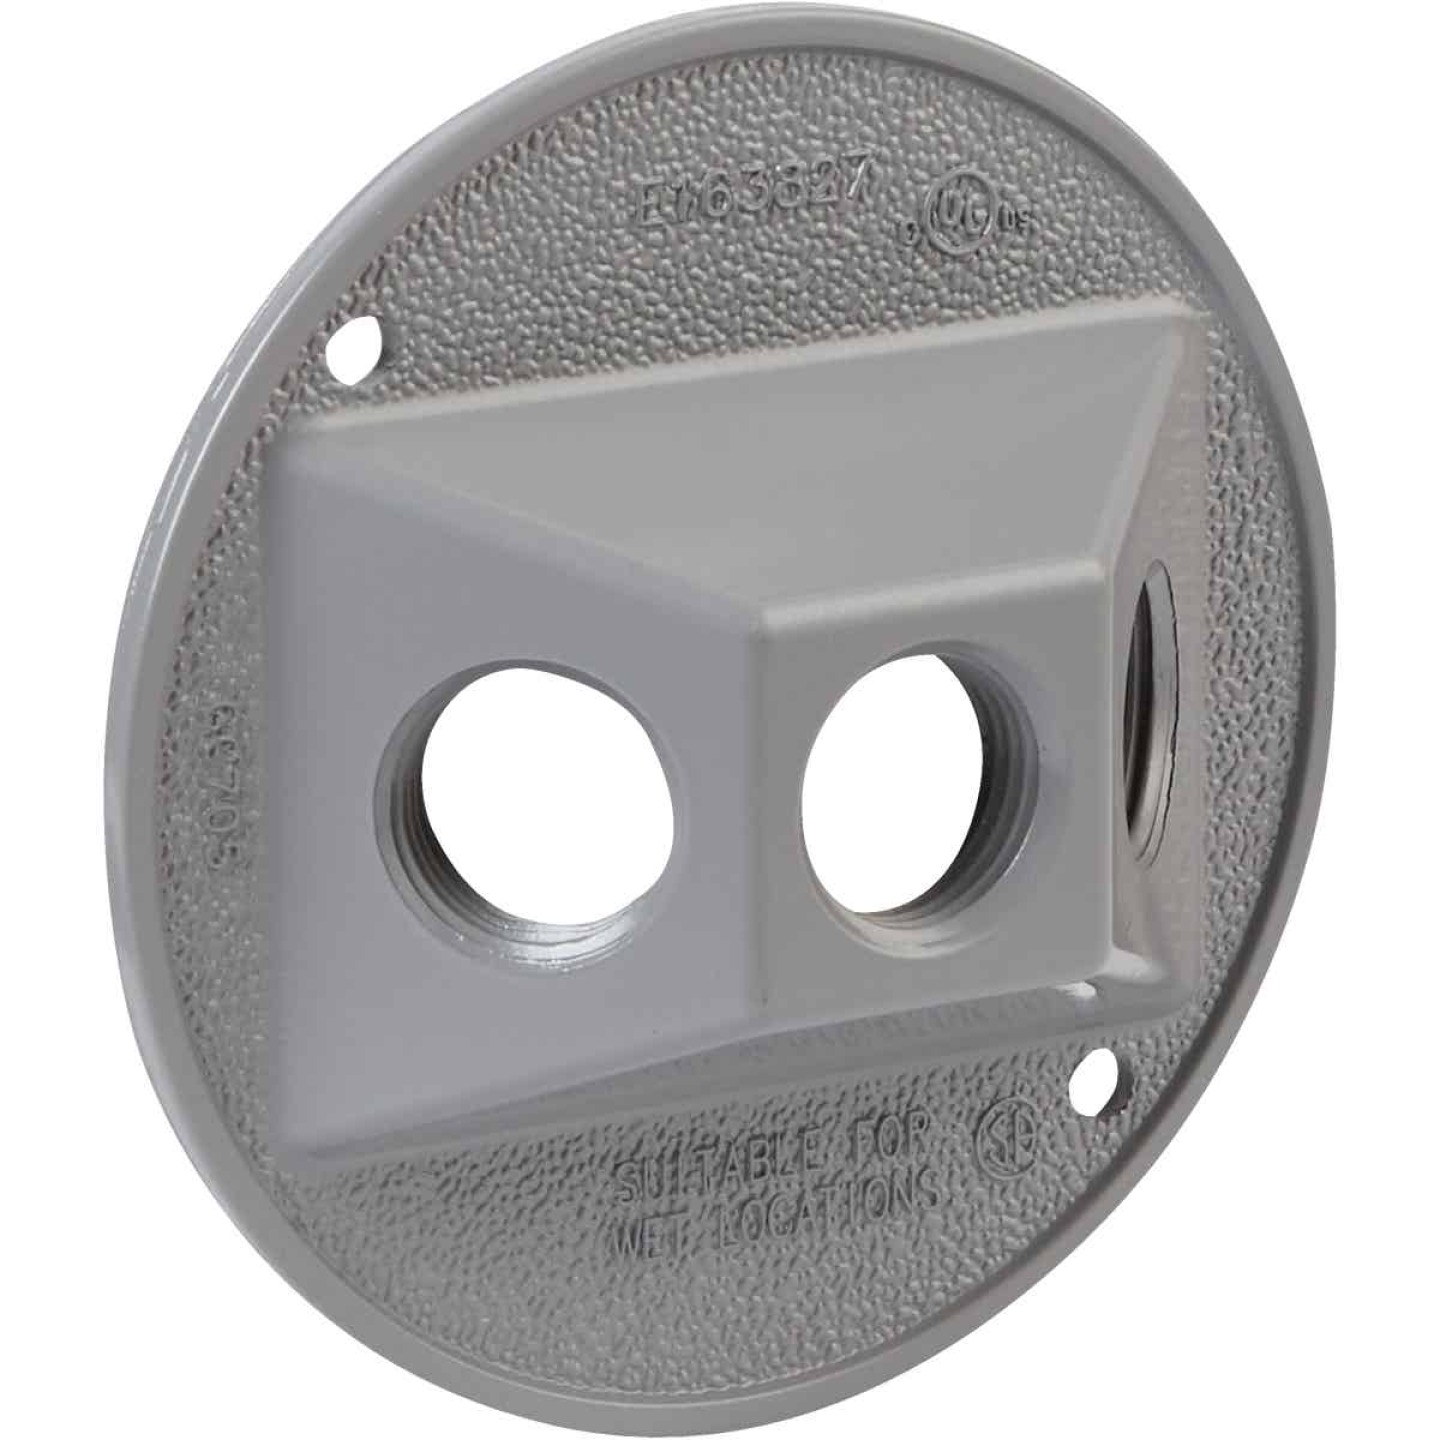 Bell 3-Outlet Round Zinc Gray Cluster Weatherproof Outdoor Box Cover, Carded Image 3